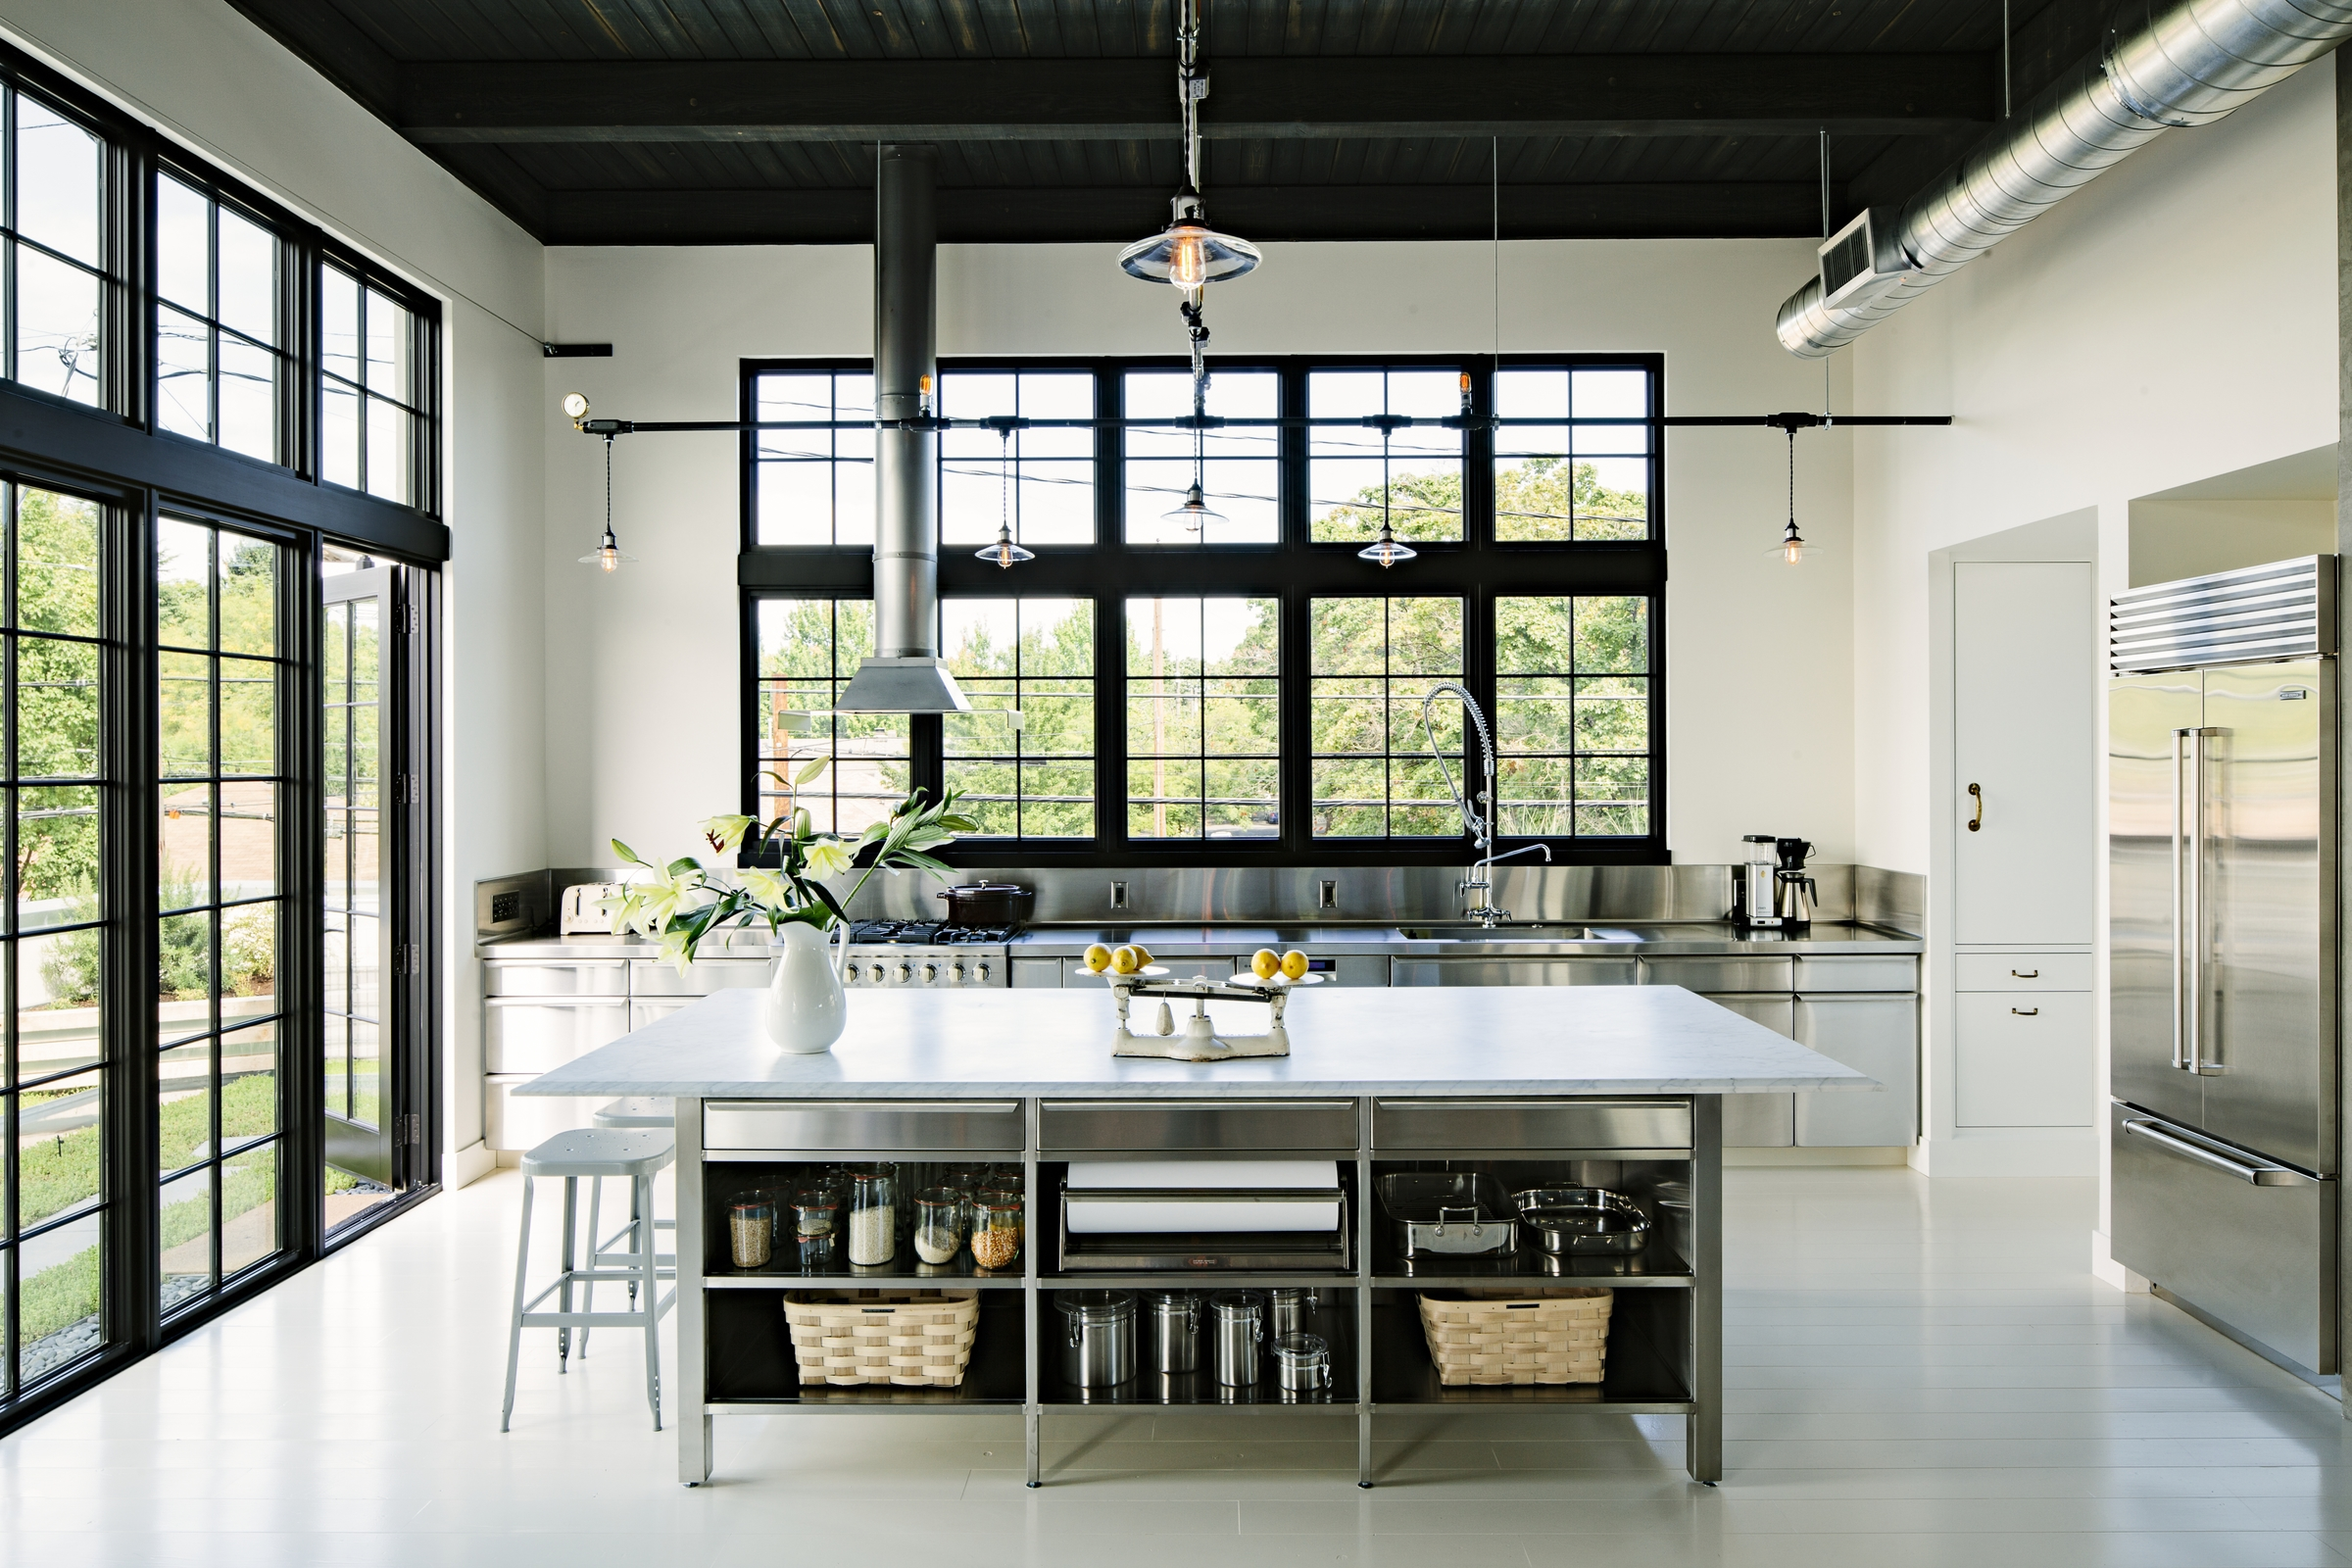 Caution: These 8 Stainless Steel Kitchen Cabinet Ideas Are Blindingly Beautiful